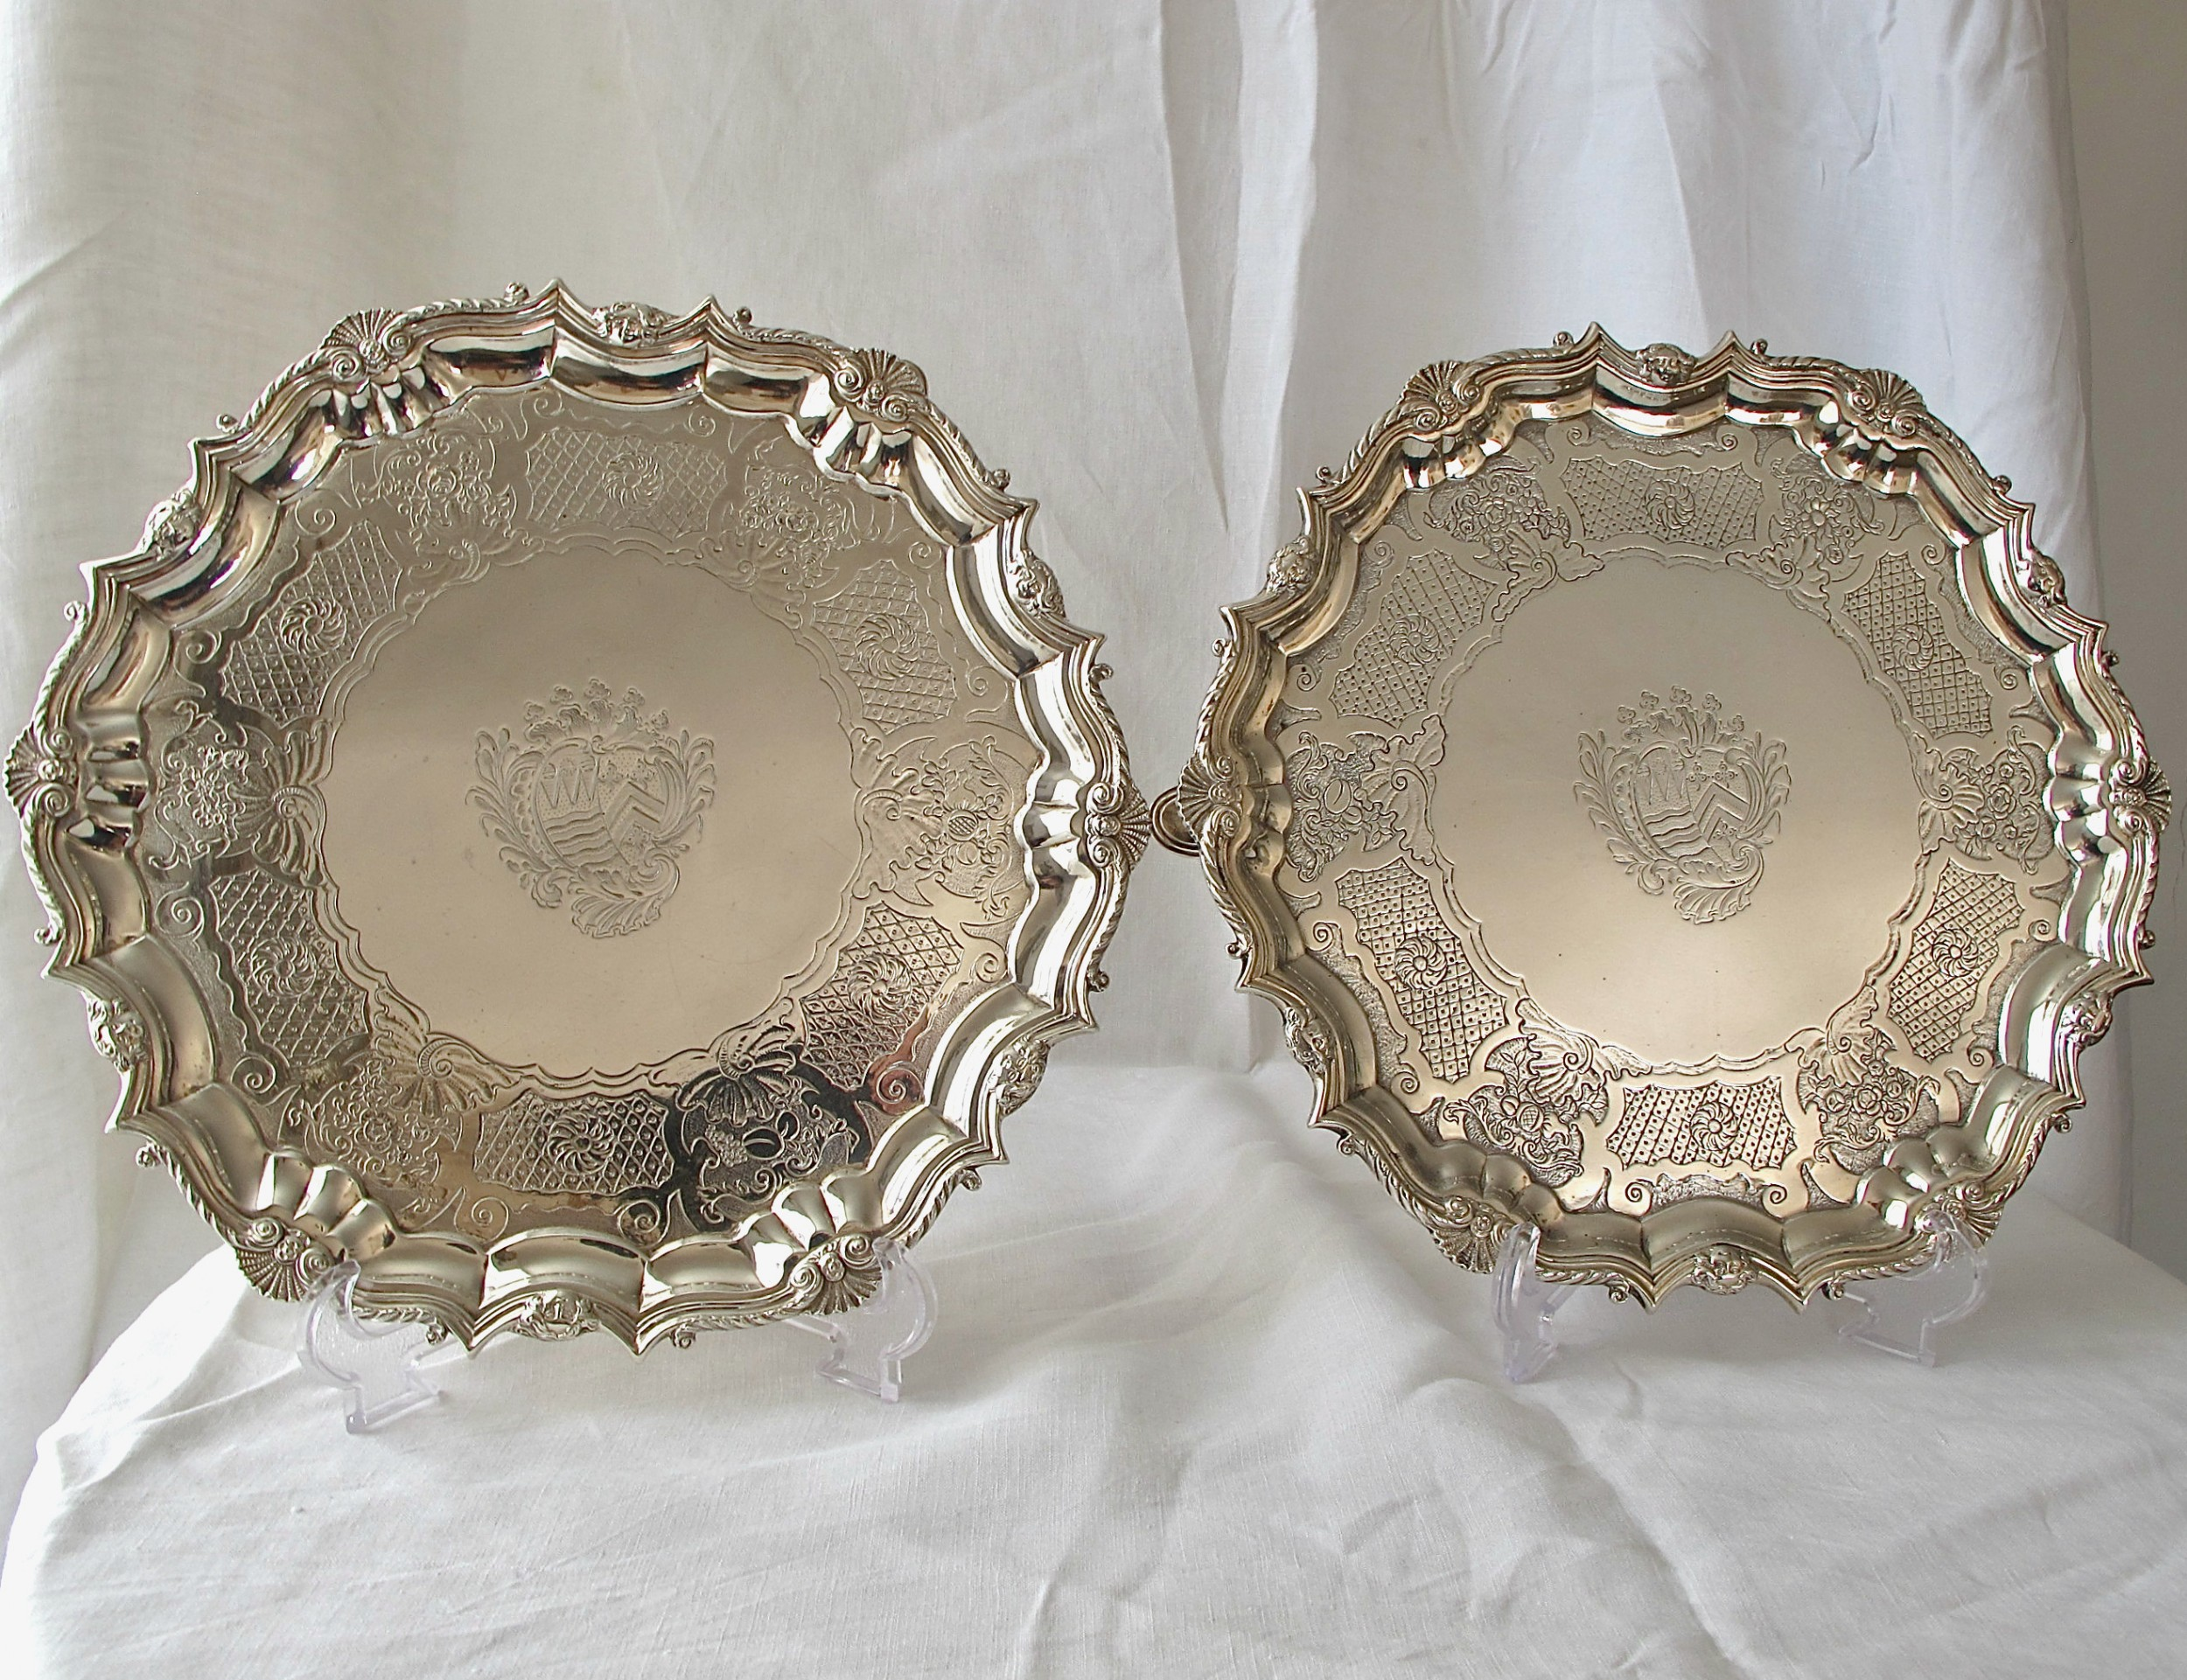 magnificent matched pair of heavy georgian silver slavers gabriel sleath and joseph angel i london 1735 and 1820